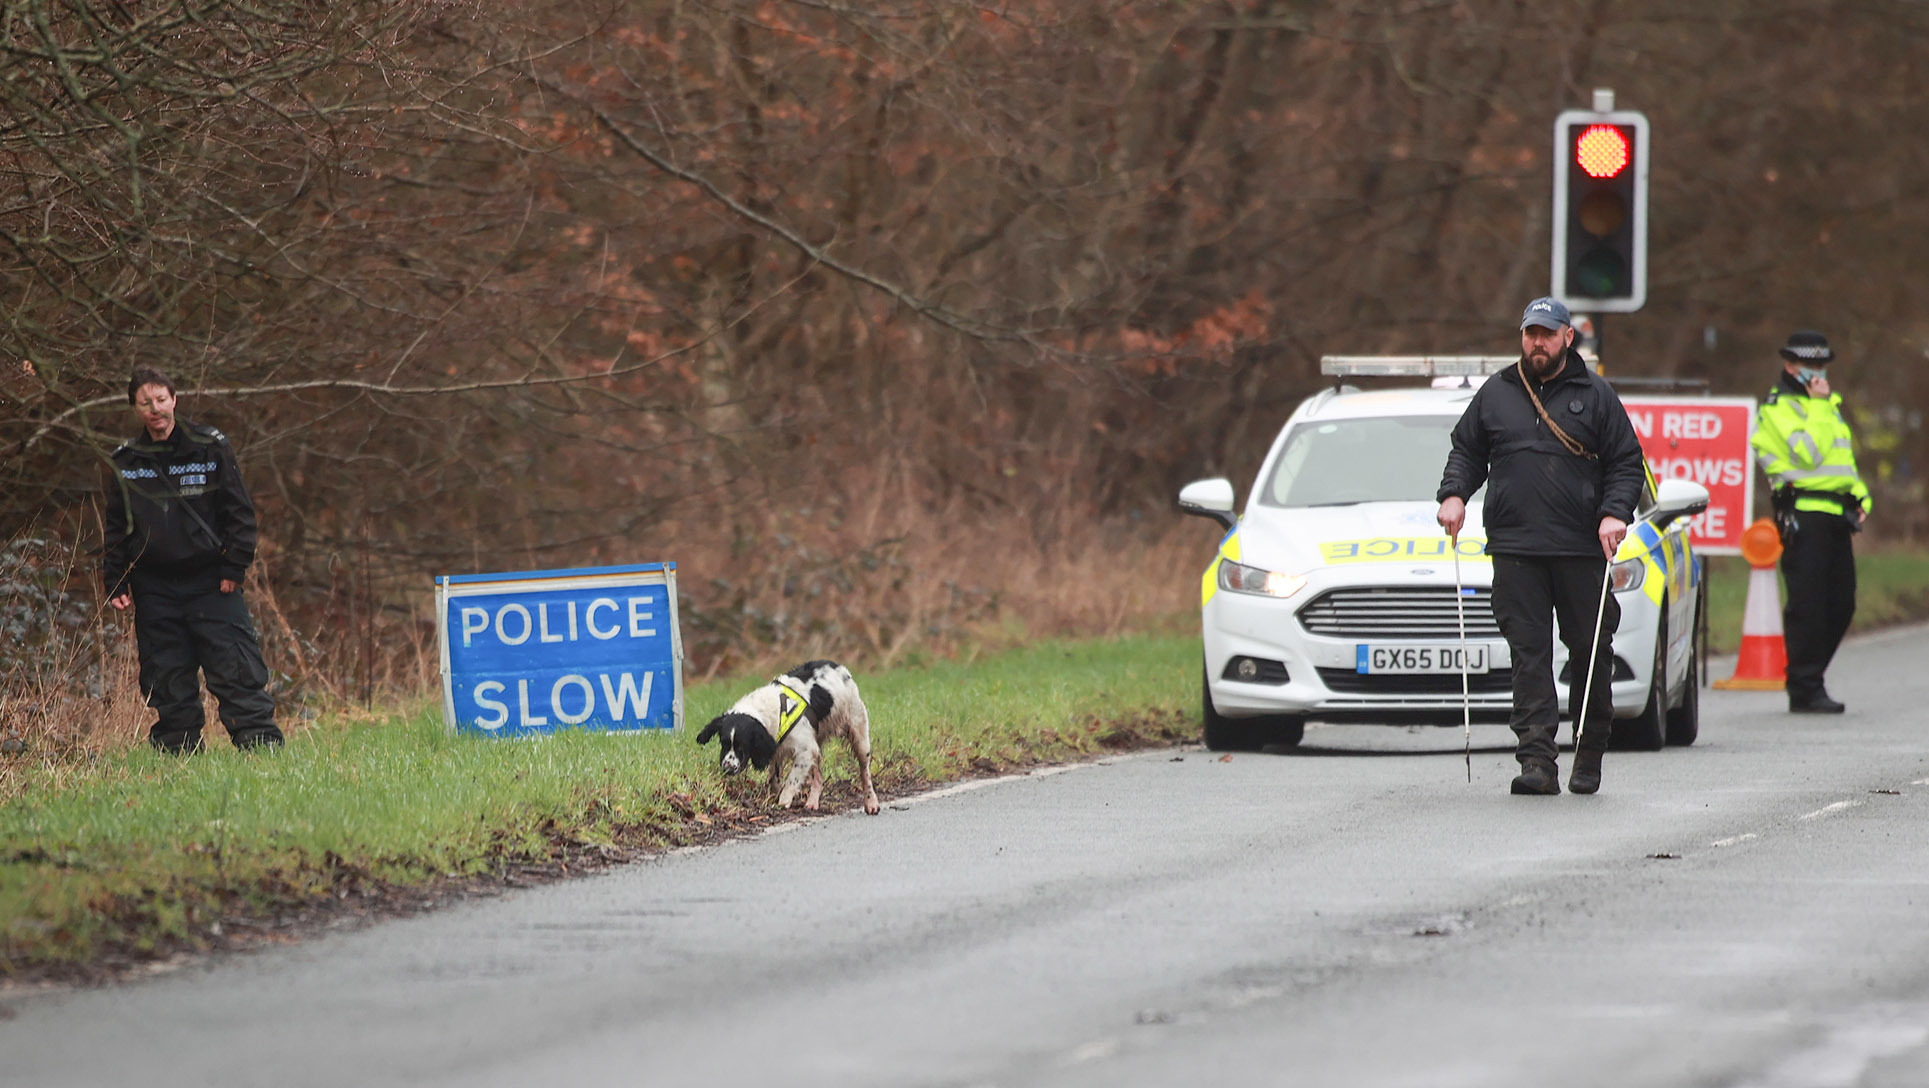 Dogs have been brought in as a police search continues after a skull was found near a layby in Chilgrove, near Chichester